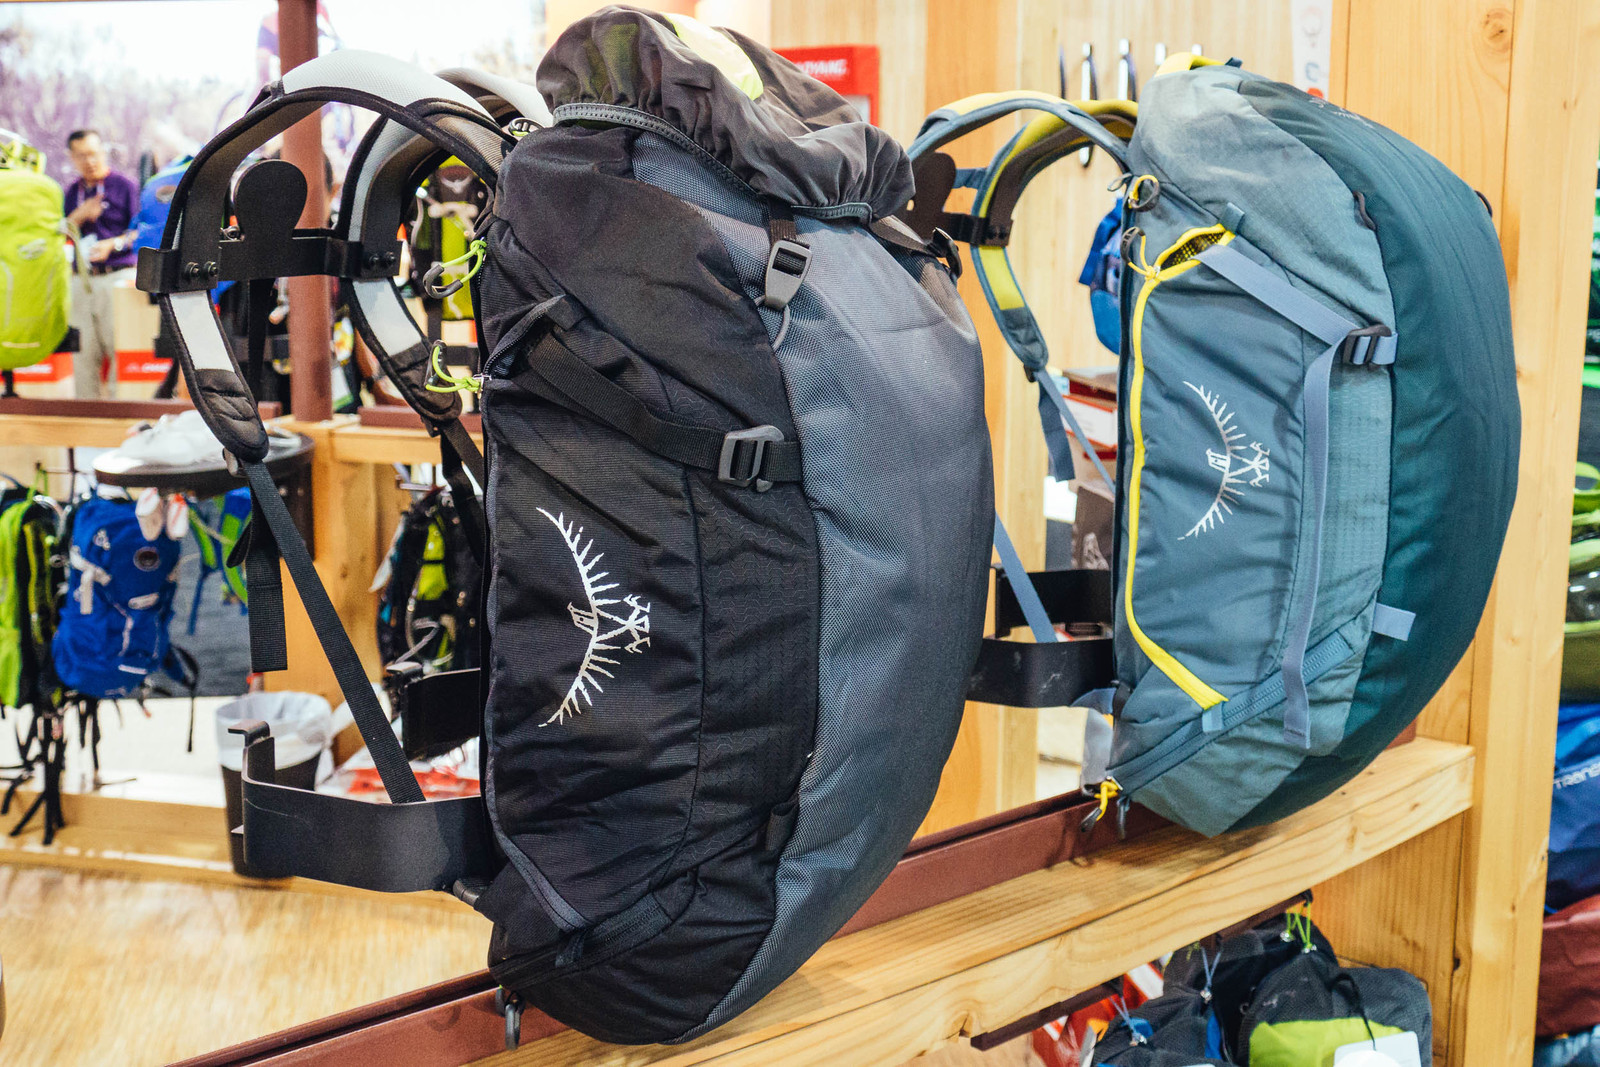 Osprey Makes New Duffel Bags with Mountain Bikers in Mind